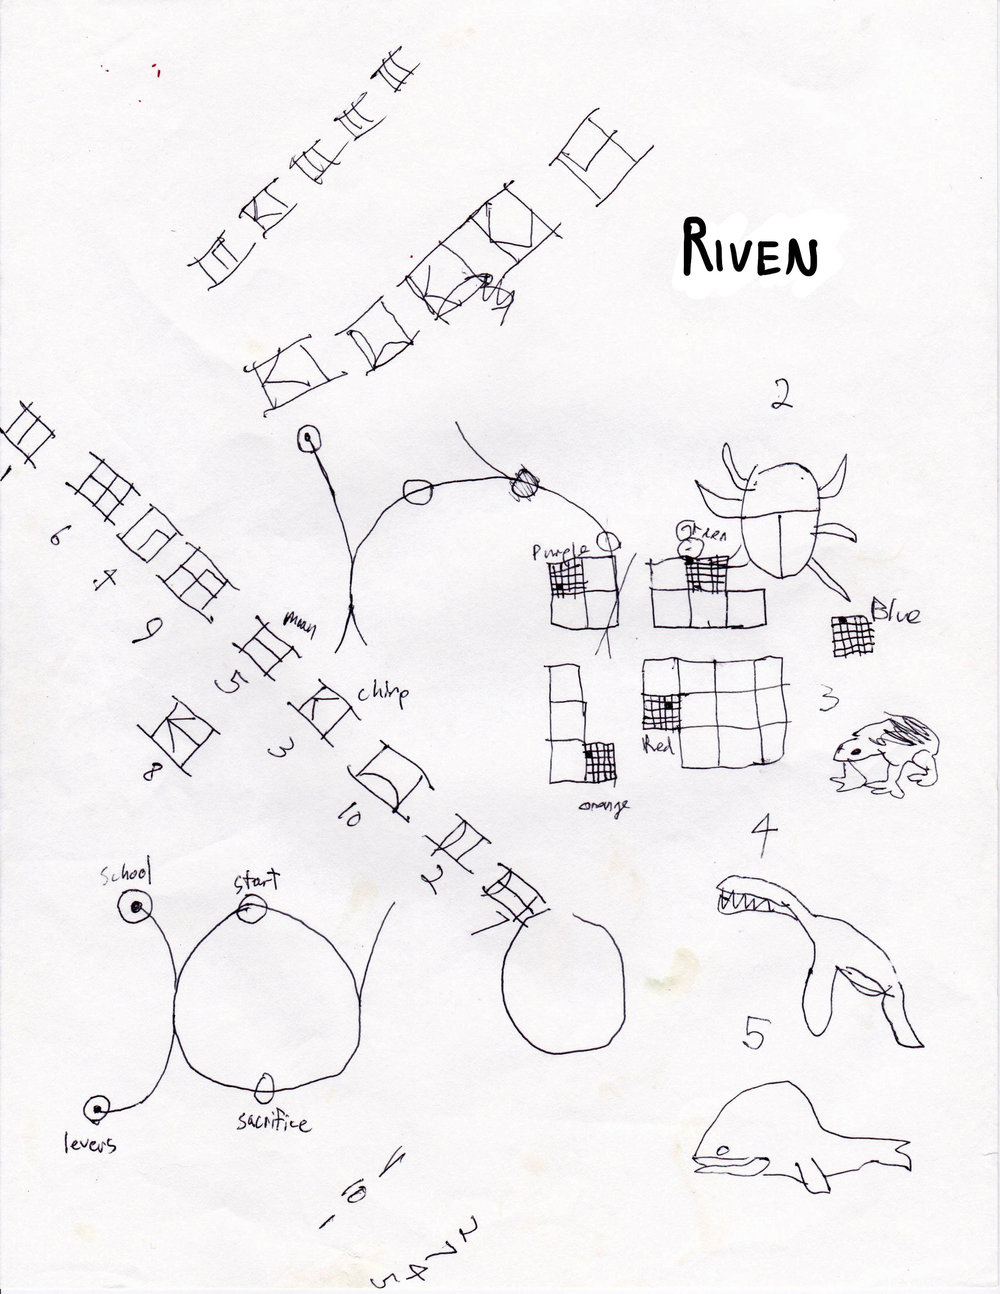 Riven, the sequel to Myst. Way more difficult to puzzle through than Myst, but the world and cultures they created were unforgettable.